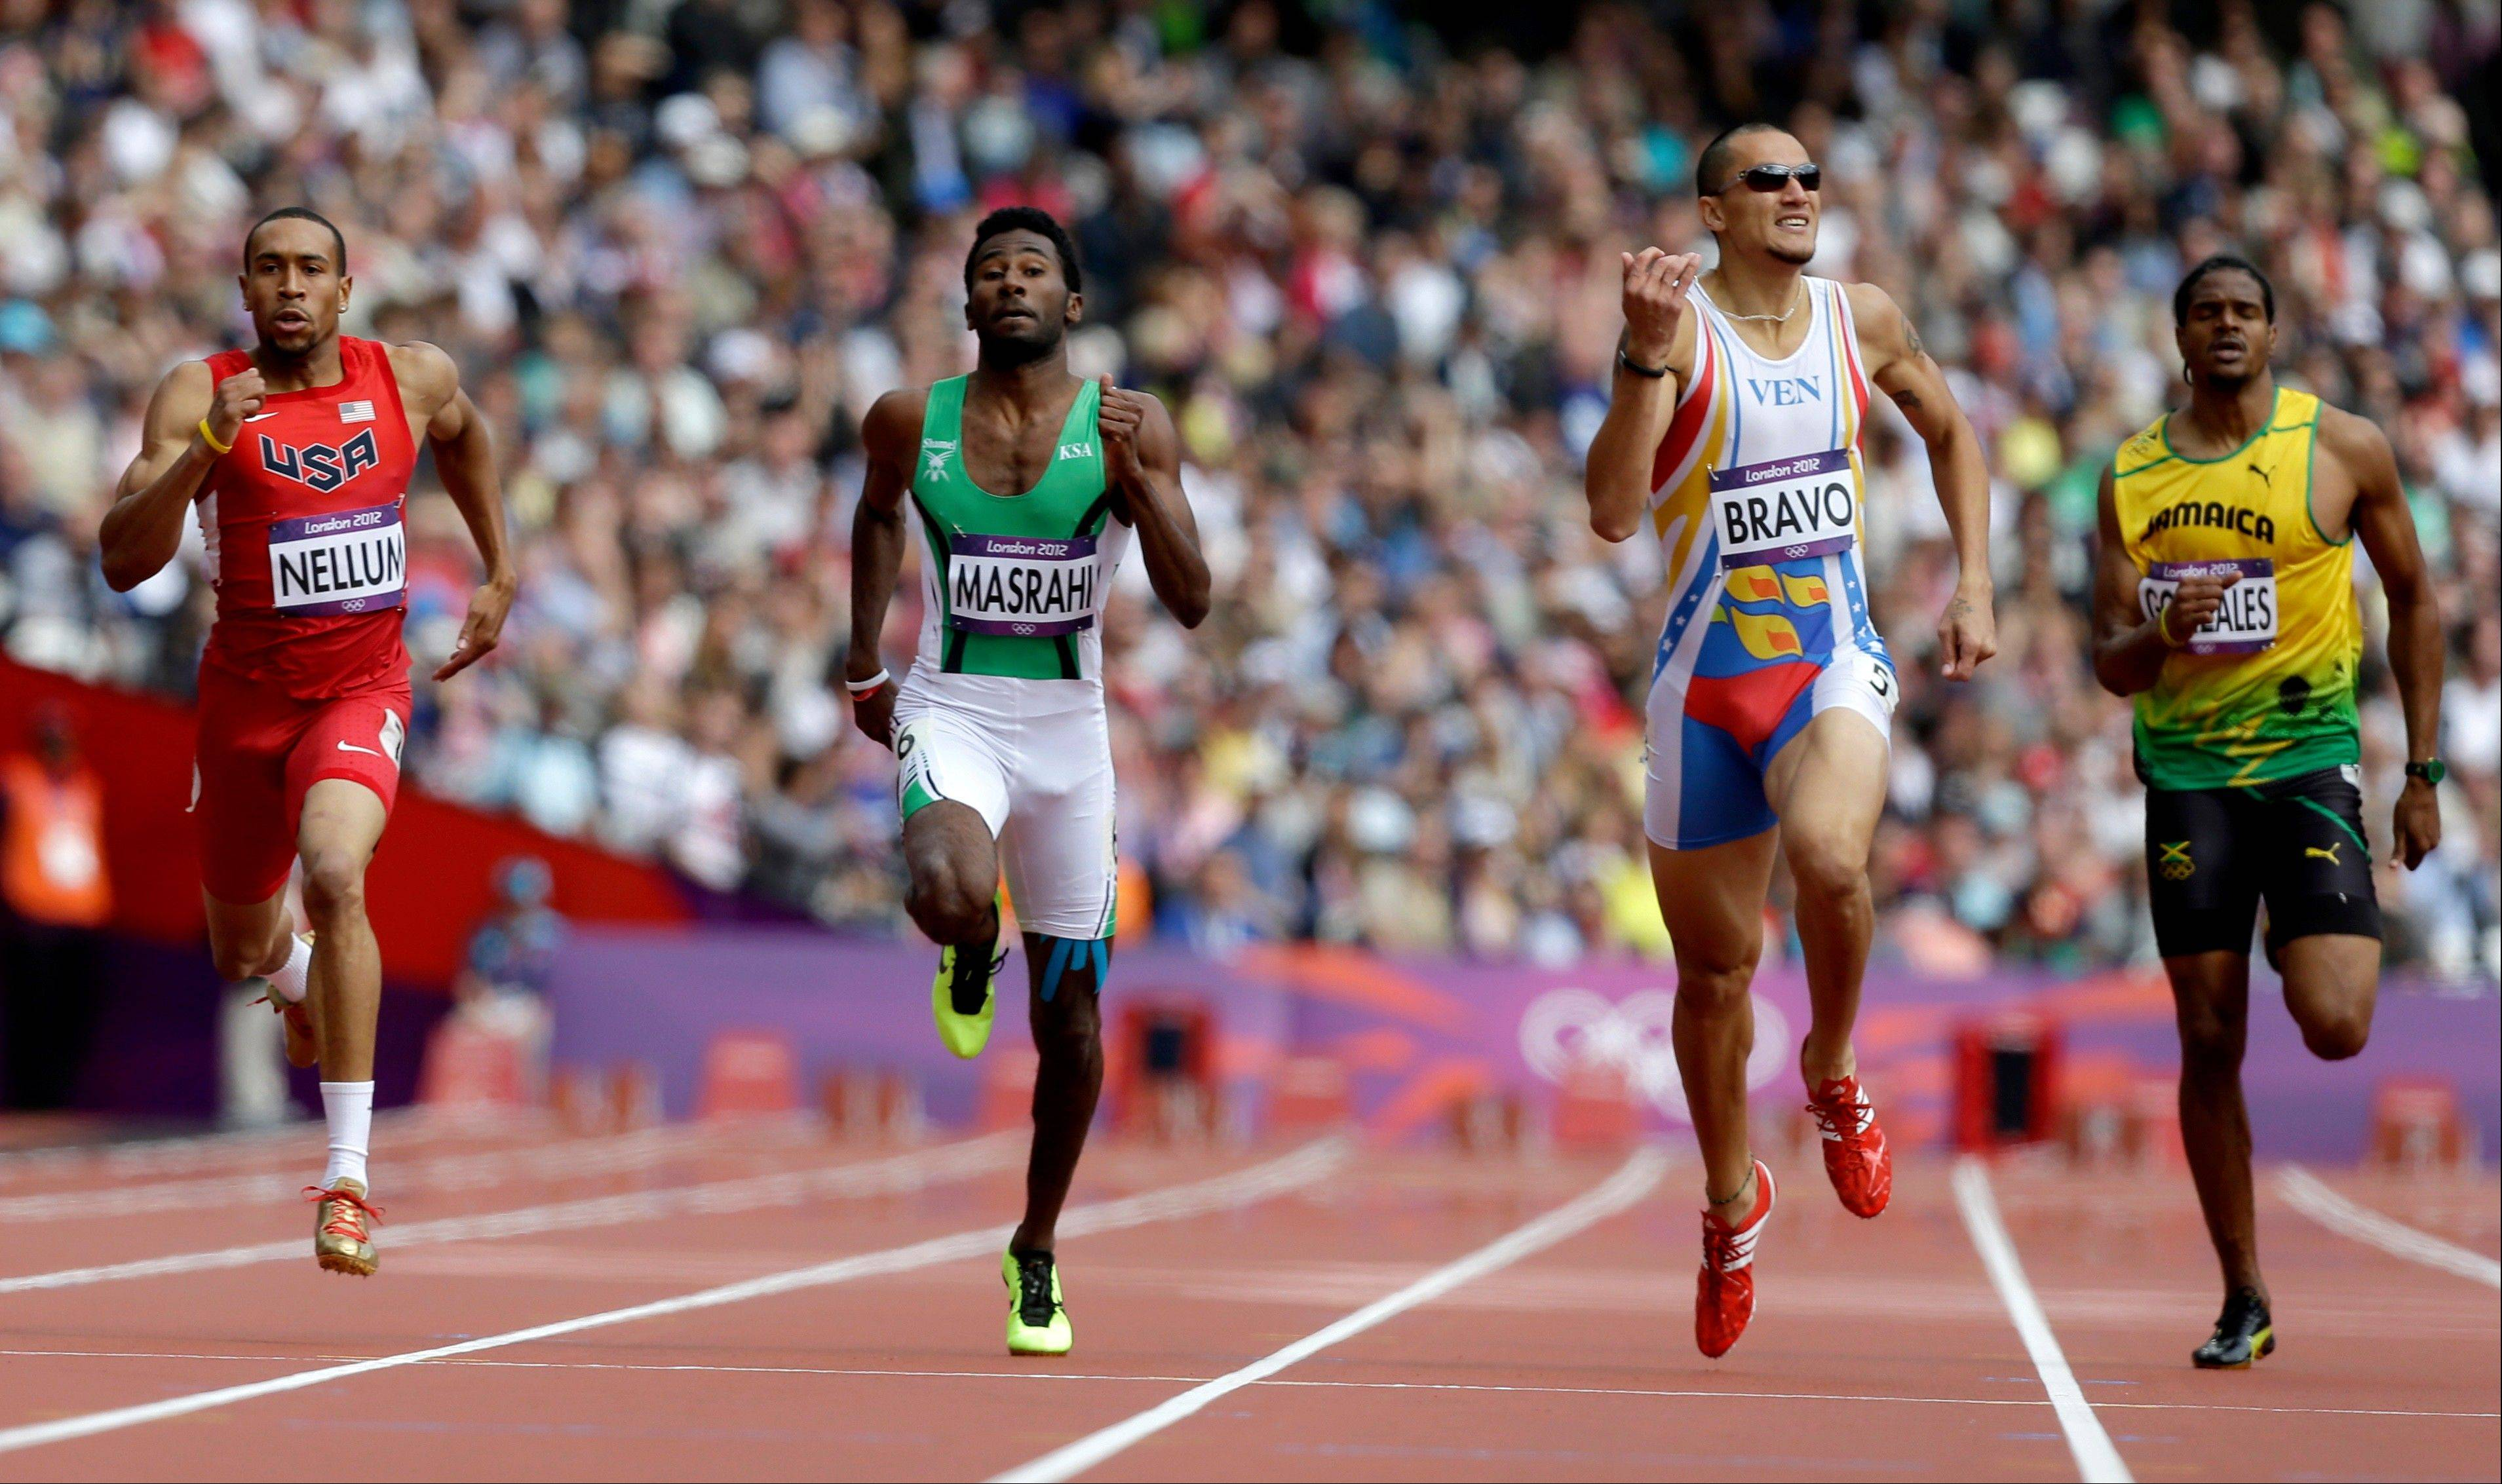 From left, United States' Bryshon Nellum,Saudi Arabia's Yousef Ahmed Masrahi, Venezuela's Albert Bravo, Jamaica's Jermaine Gonzales compete in a men's 400-meter heat during the athletics in the Olympic Stadium at the 2012 Summer Olympics, London, Saturday, Aug. 4, 2012.